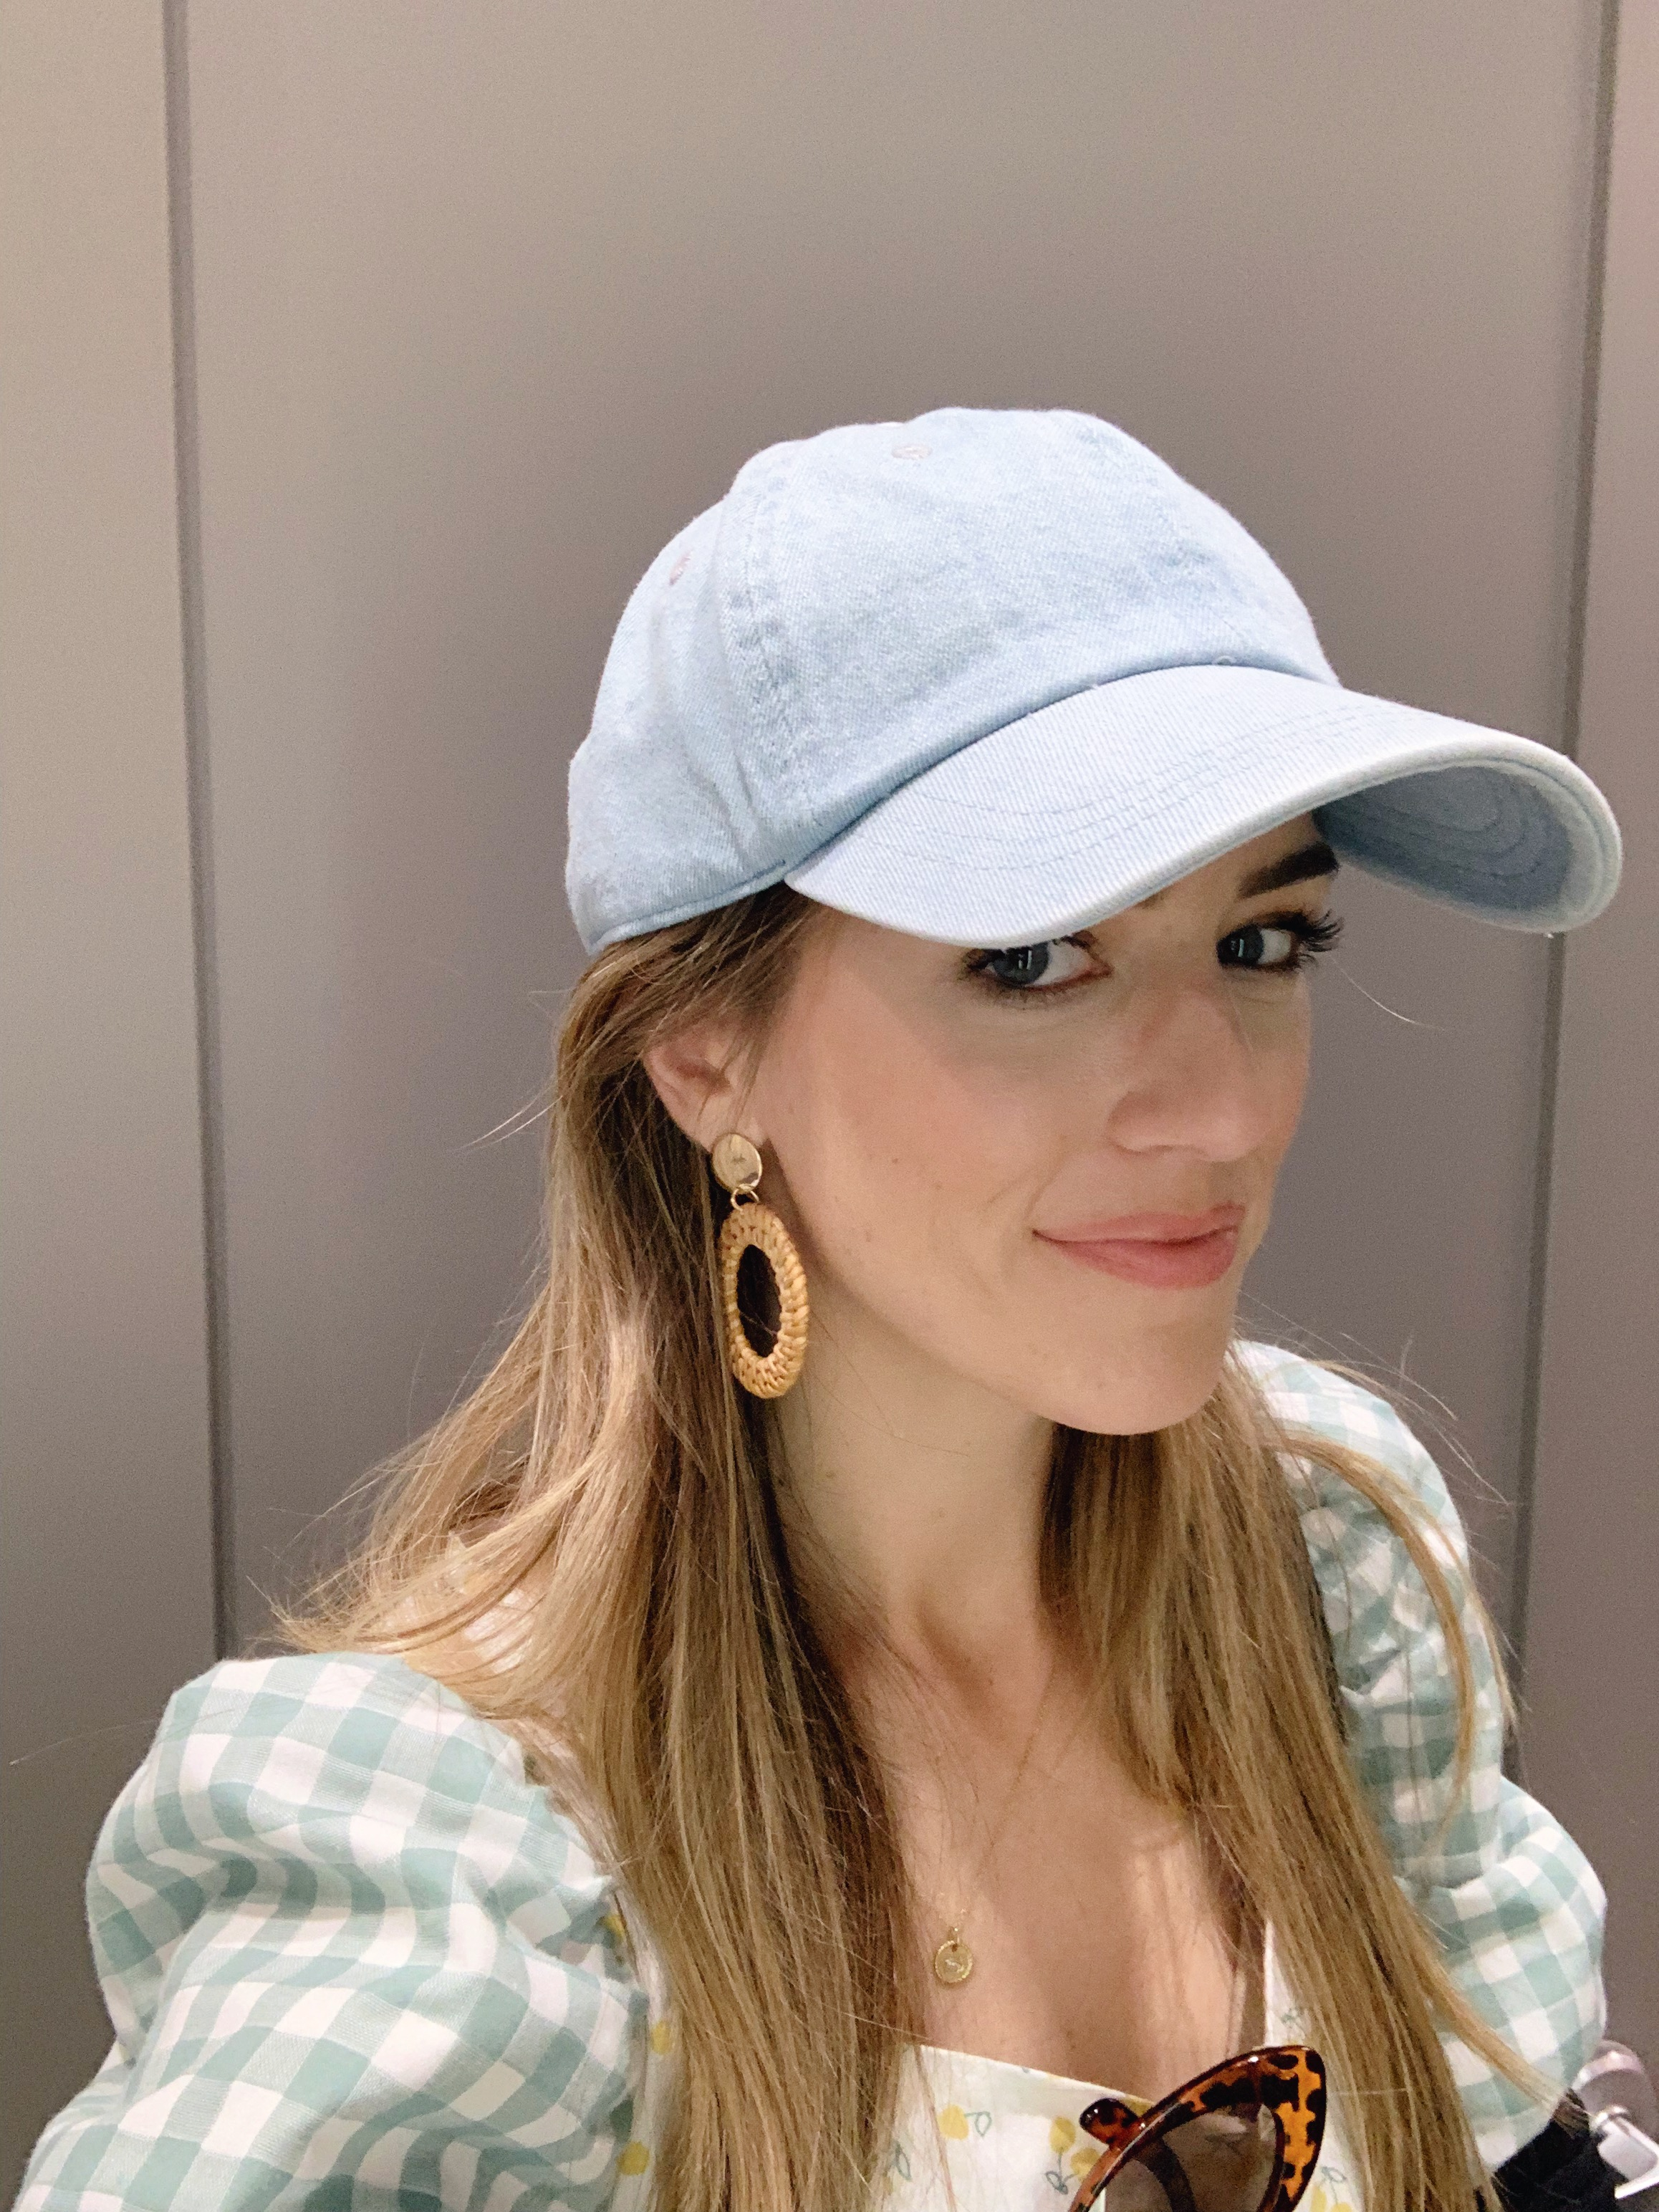 Such a cute take on a baseball cap that you could wear with so many things. Perfect to cover a bad hair day and its only $10.